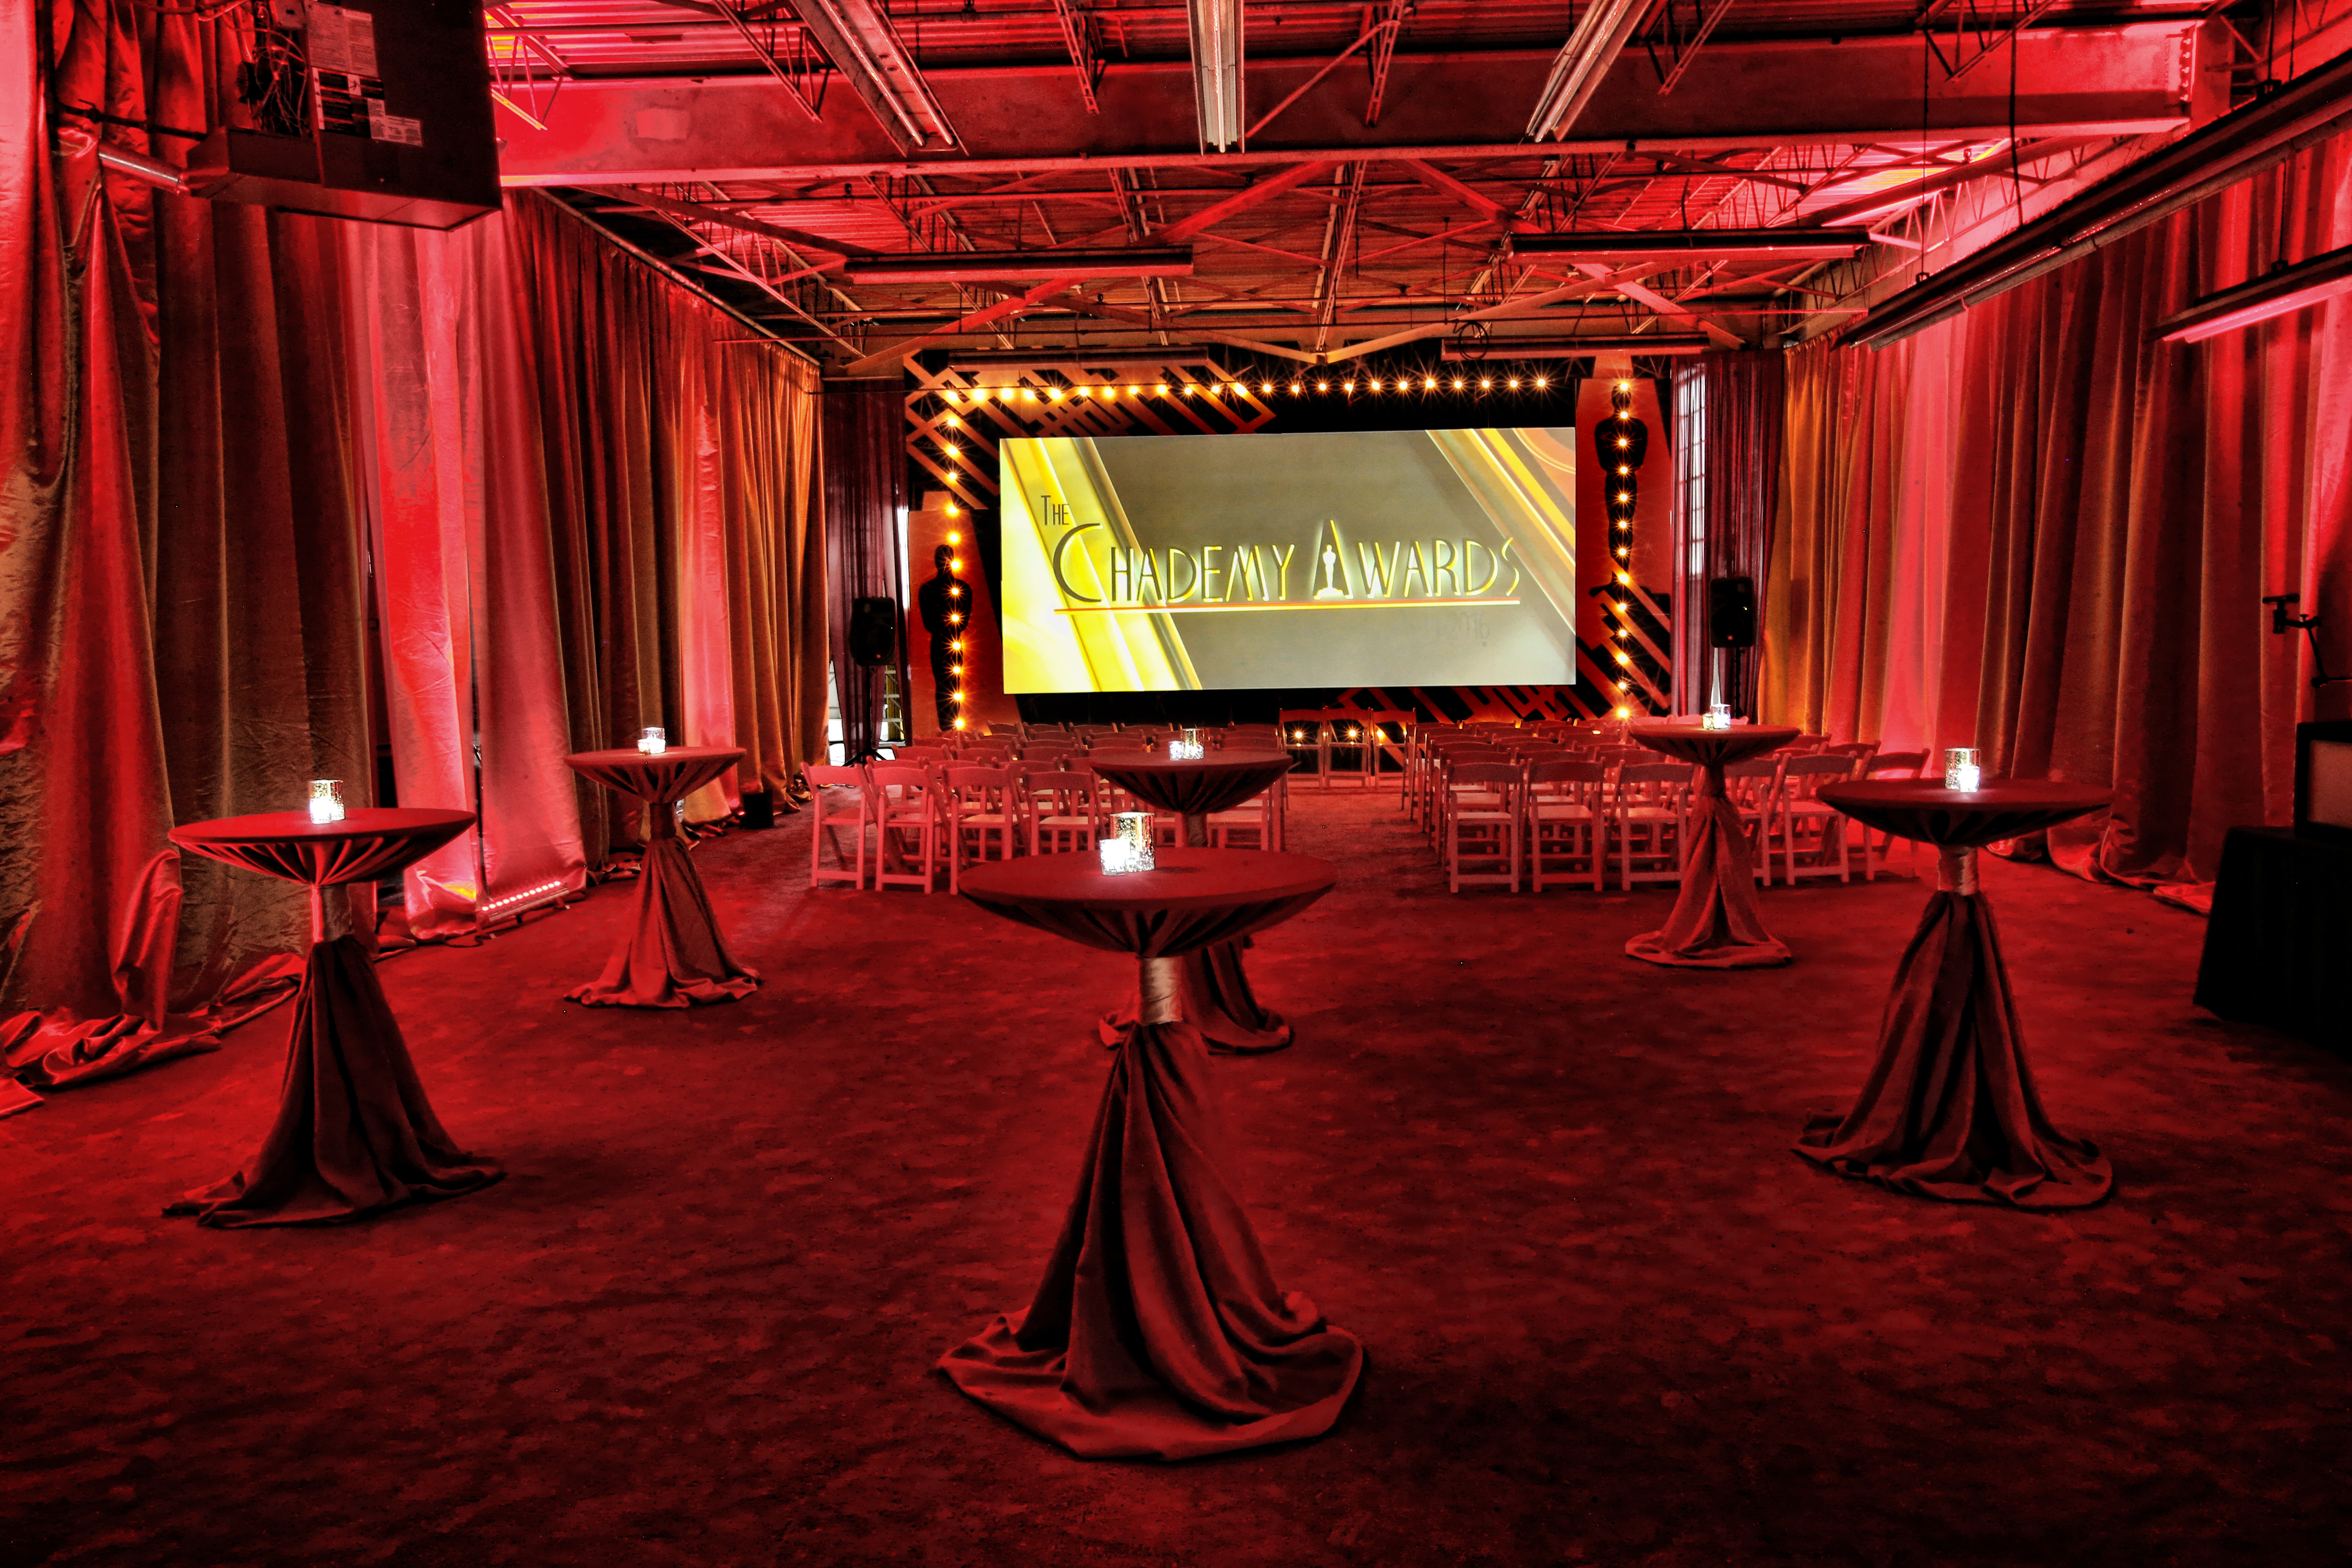 The Chademy Awards Bar Mitzvah - Epic Events